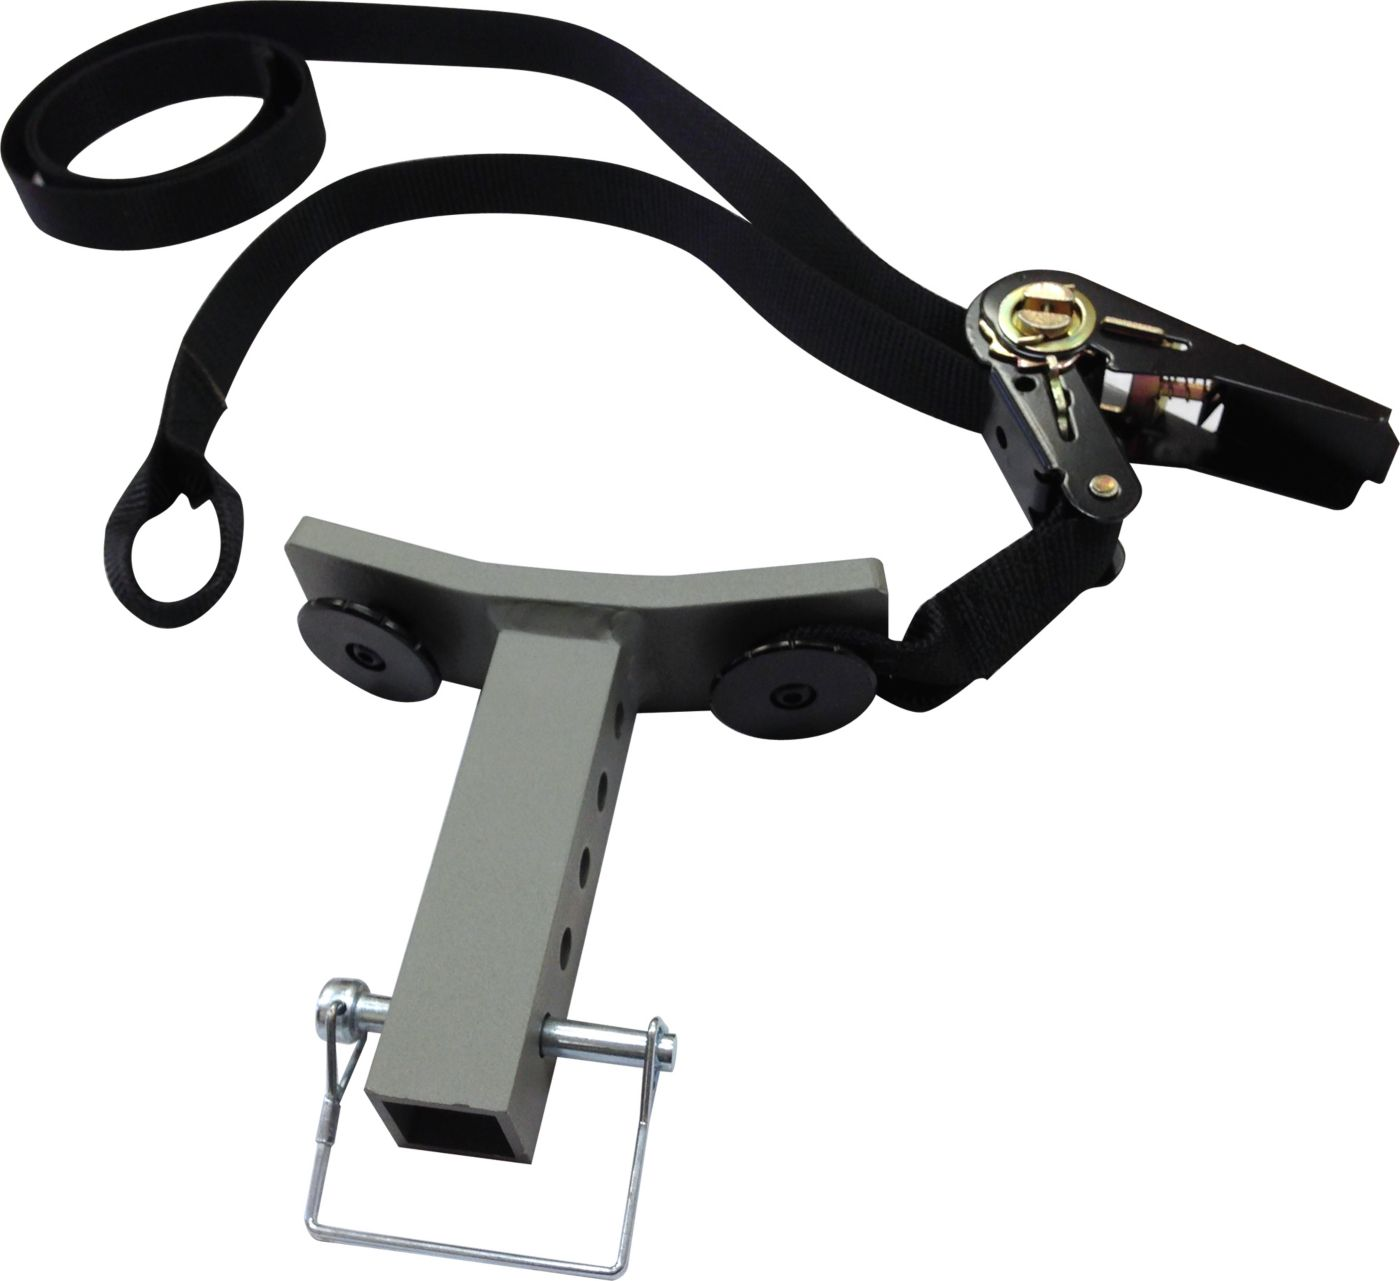 X-Stand Quick-Hitch Receiver